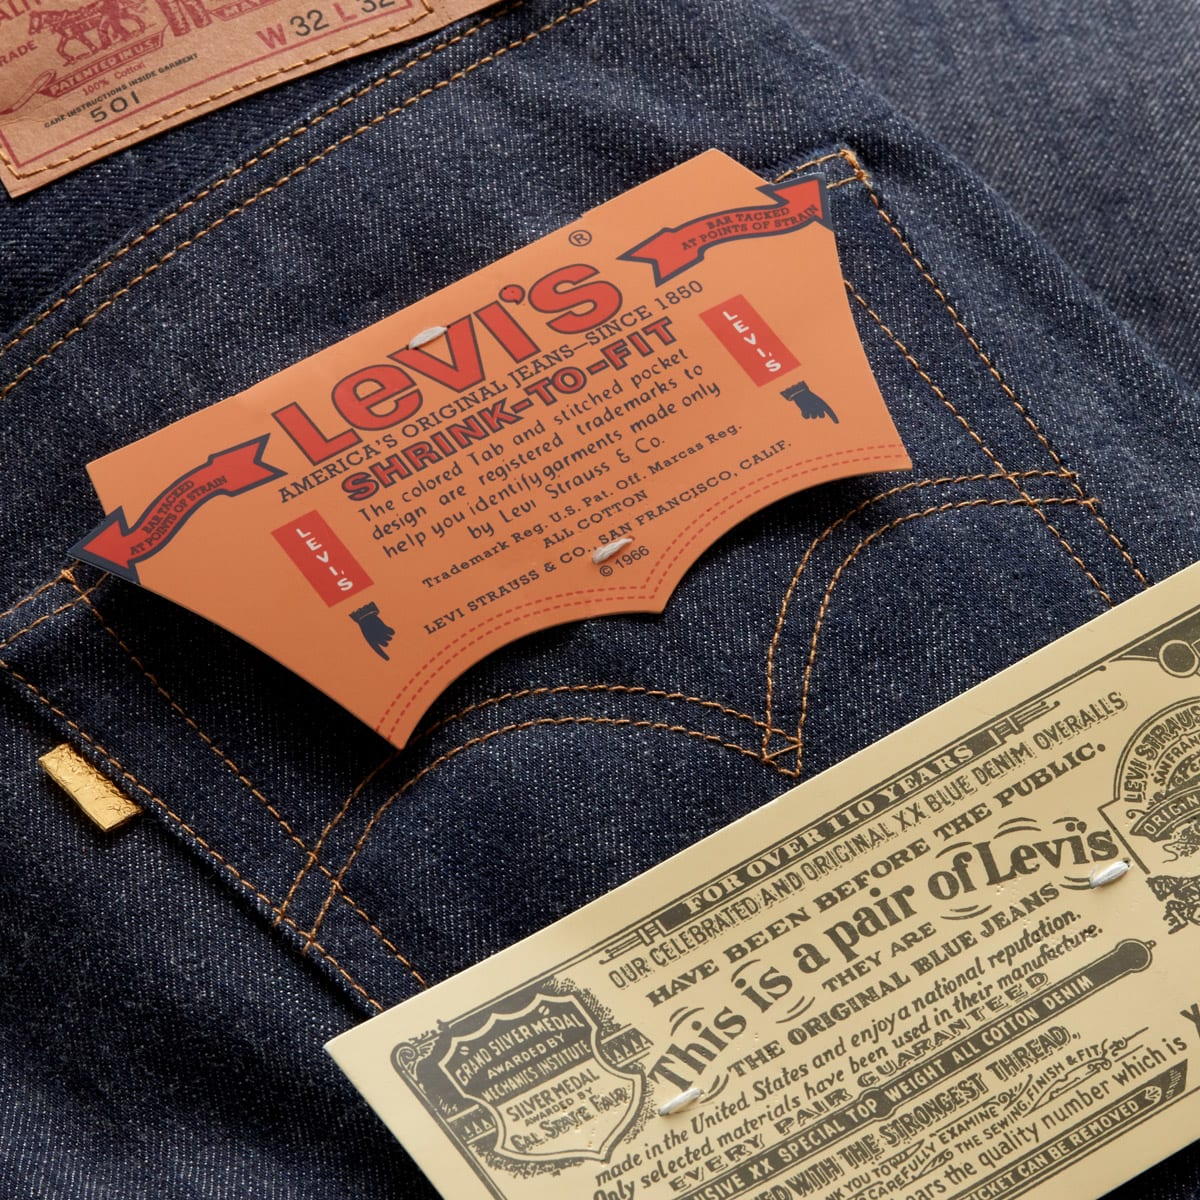 Levi's Cone Mill 501 'Golden Ticket' Jean - 26865-0000